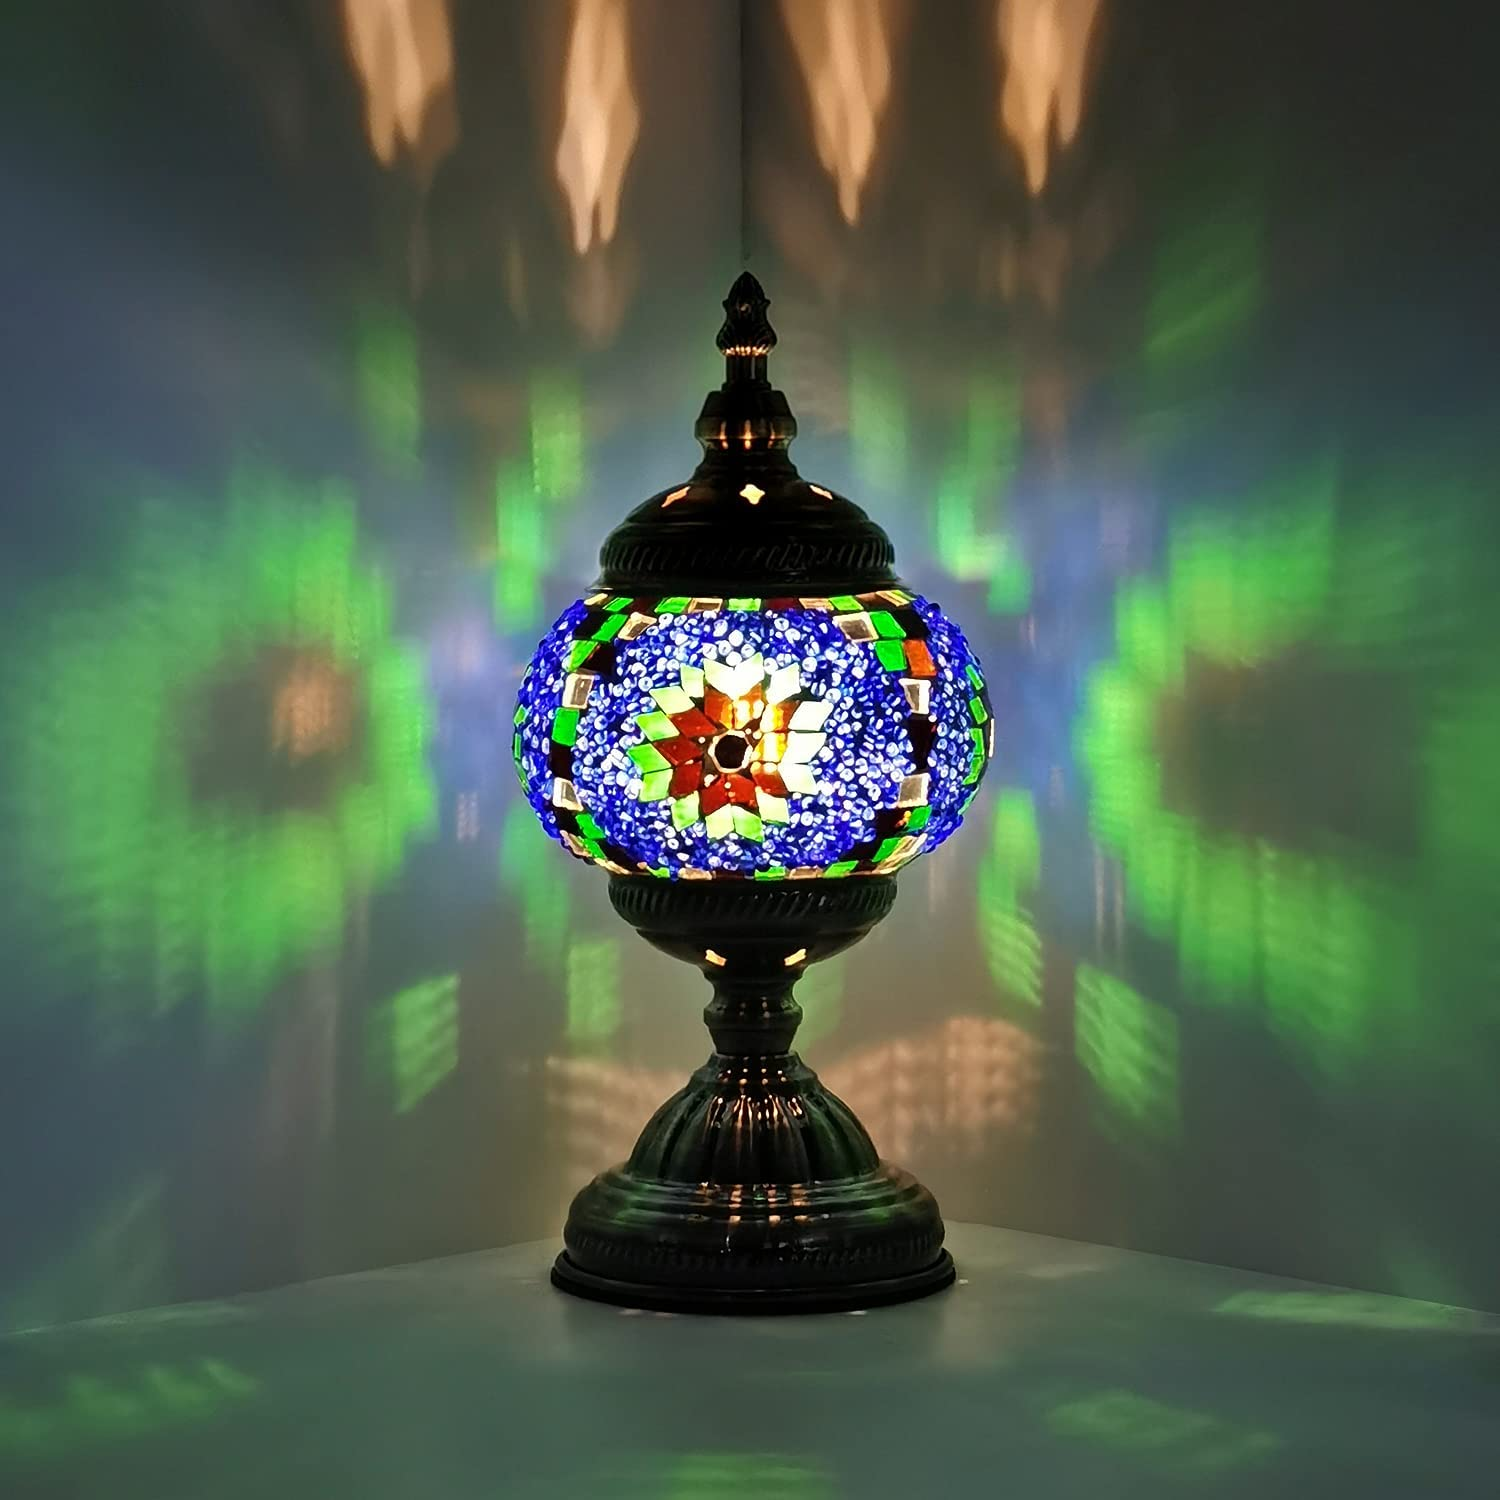 Marrakech Turkish Mosaic Lamp Unique Tiffany Style Decor Lamp Stained Glass Moroccan Lantern Lamp Room Decoration Art Decor Living Room lamp (5)